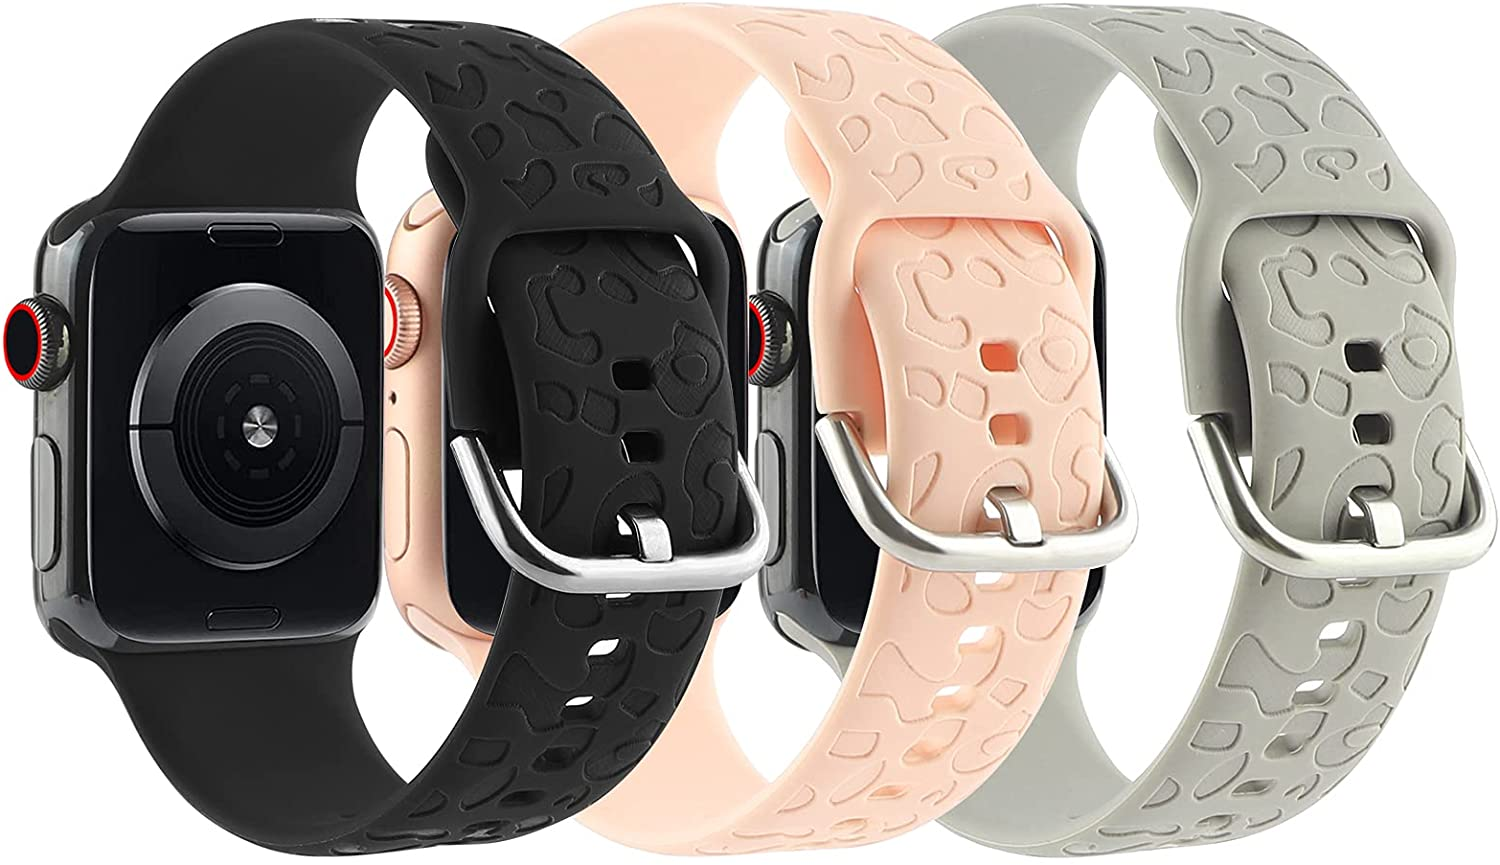 3 Pack Cheetah Engraved Strap Compatible with Apple Watch Bands 38mm 40mm,Fancy Leopard Laser Printed Soft Silicone Accessories for iWatch Series 1 2 3 4 5 6 SE Smartwatch